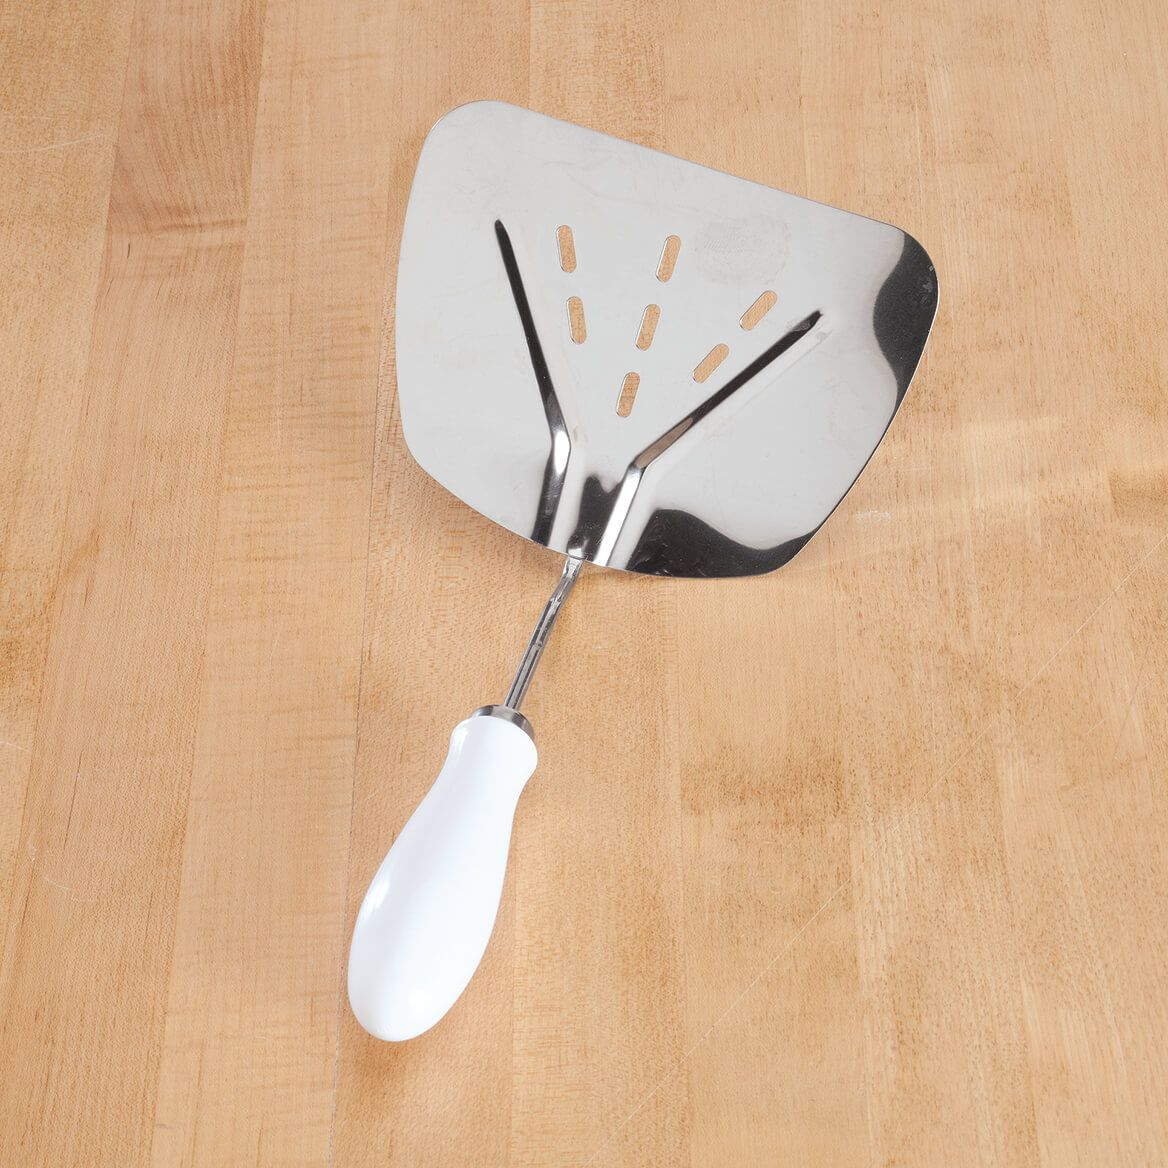 Vintage Stainless Steel Wide Body Spatula-370405